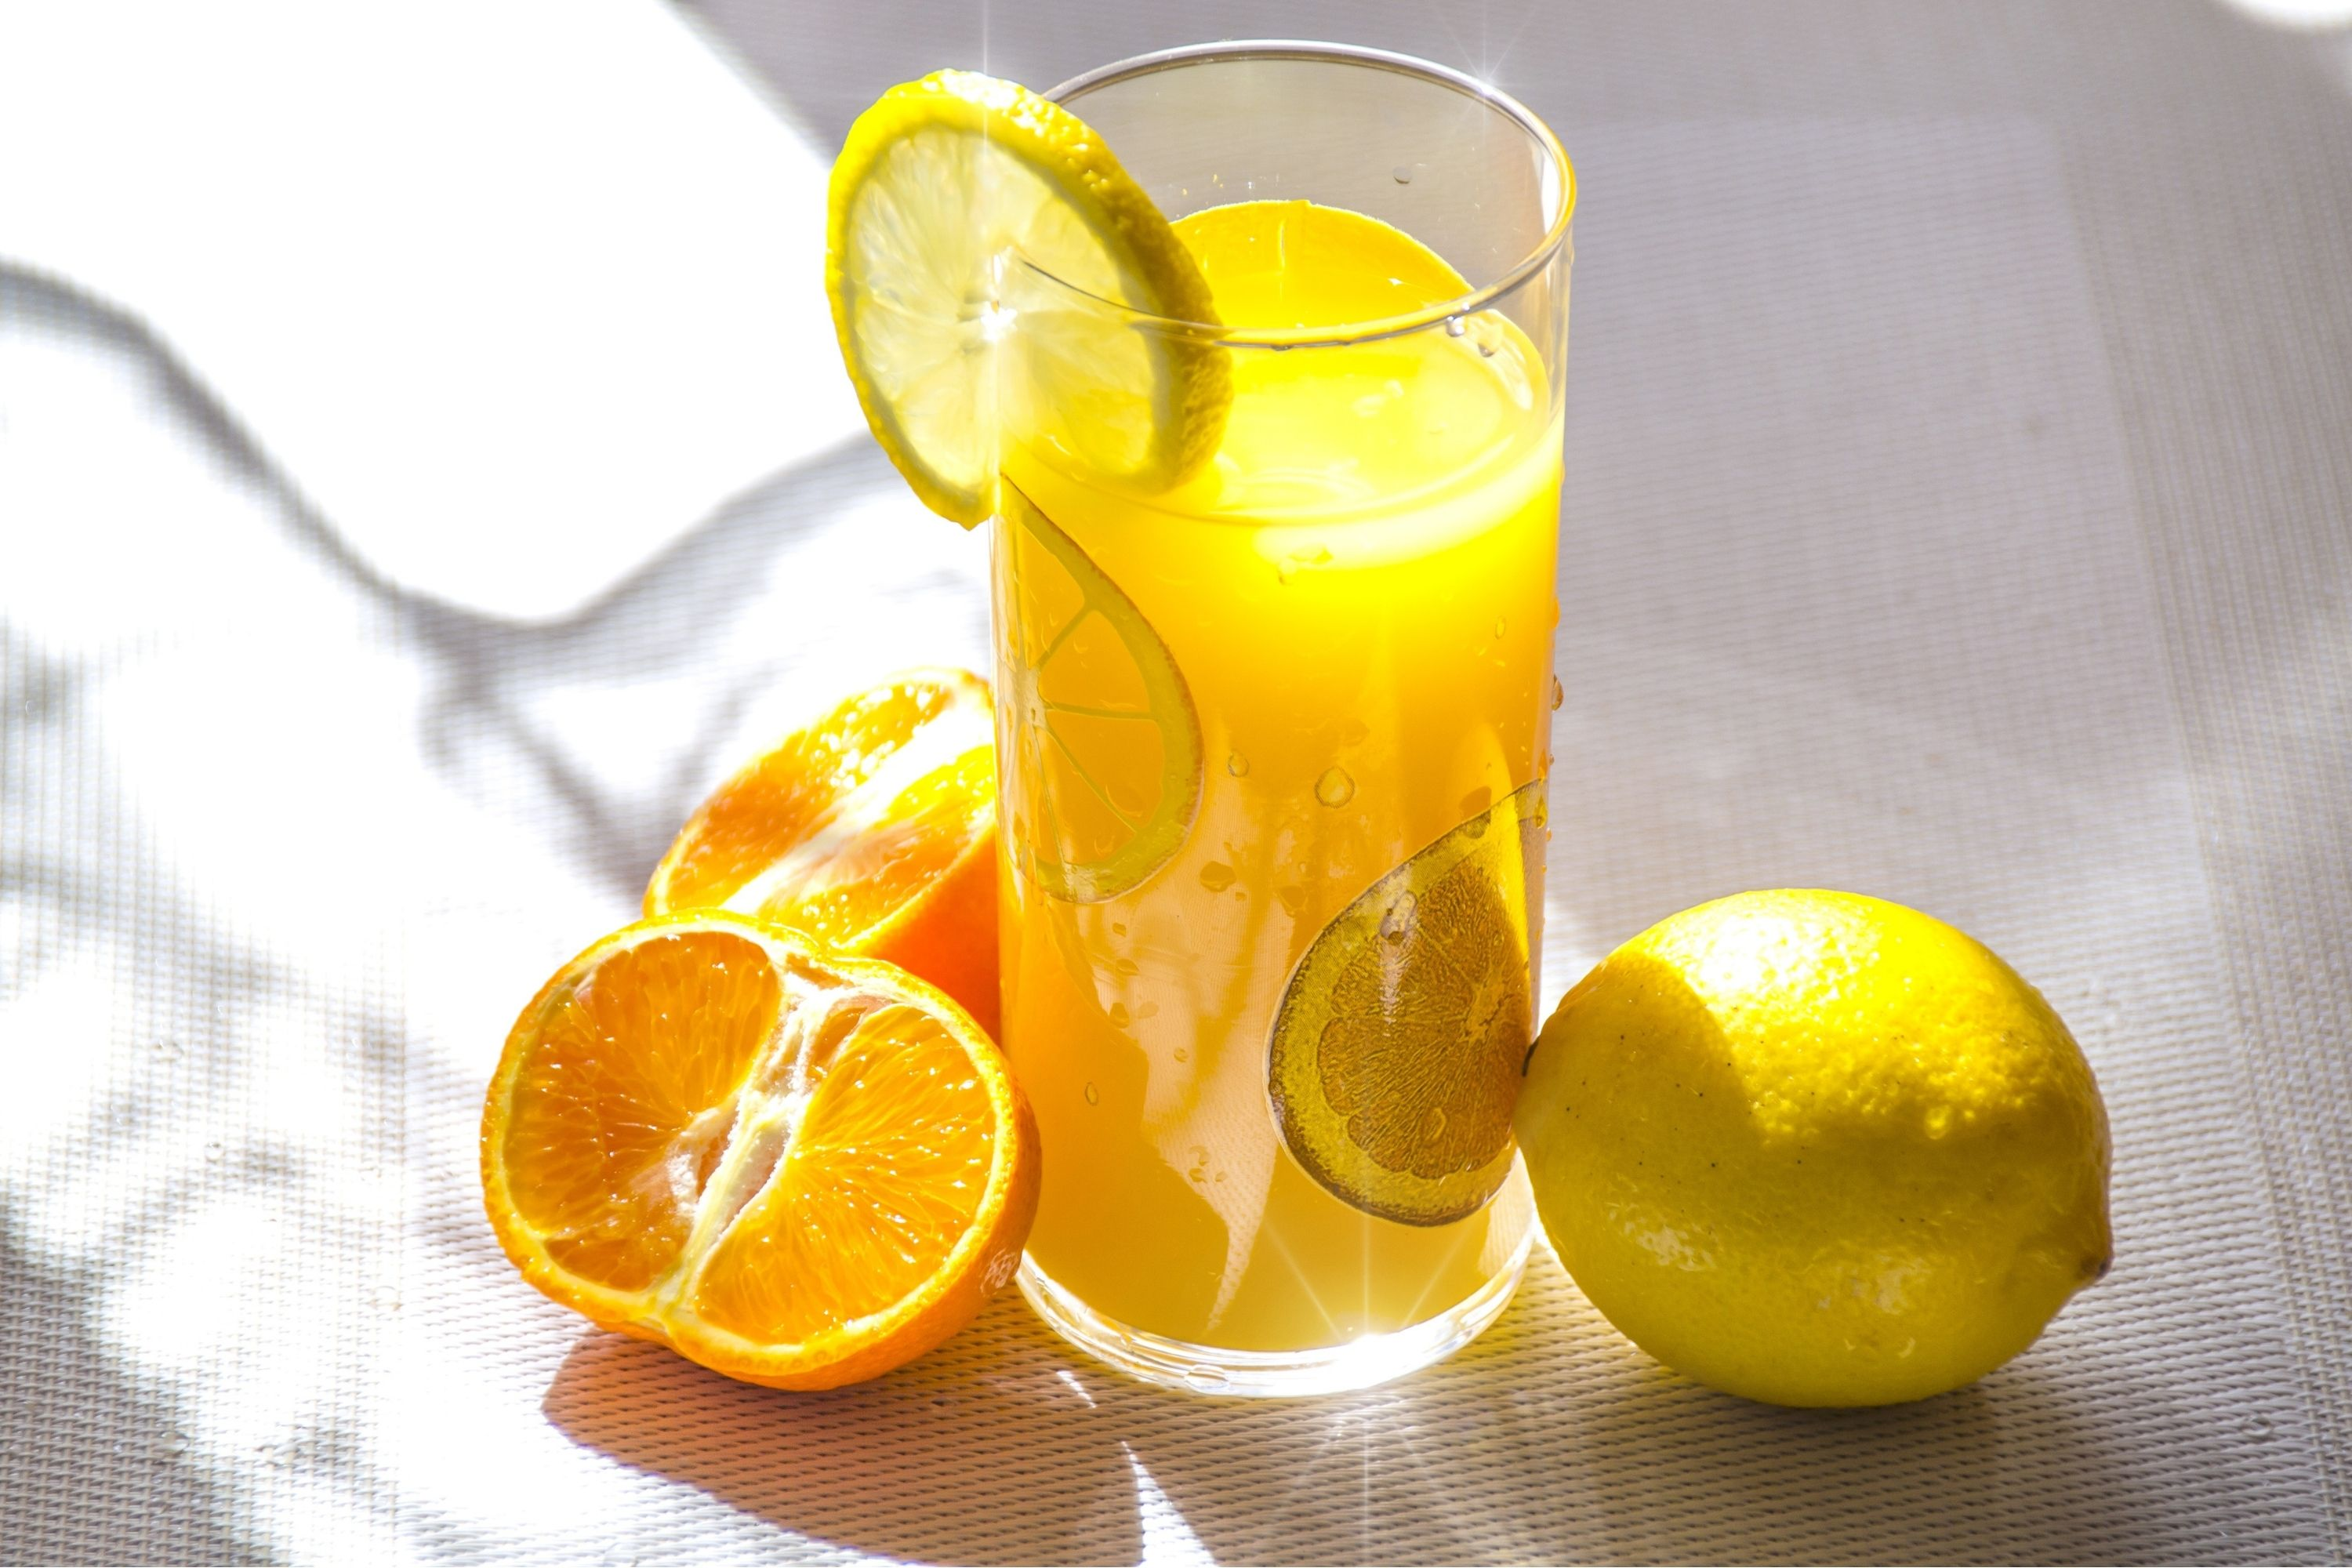 How many ounces of juice is there in a lemon